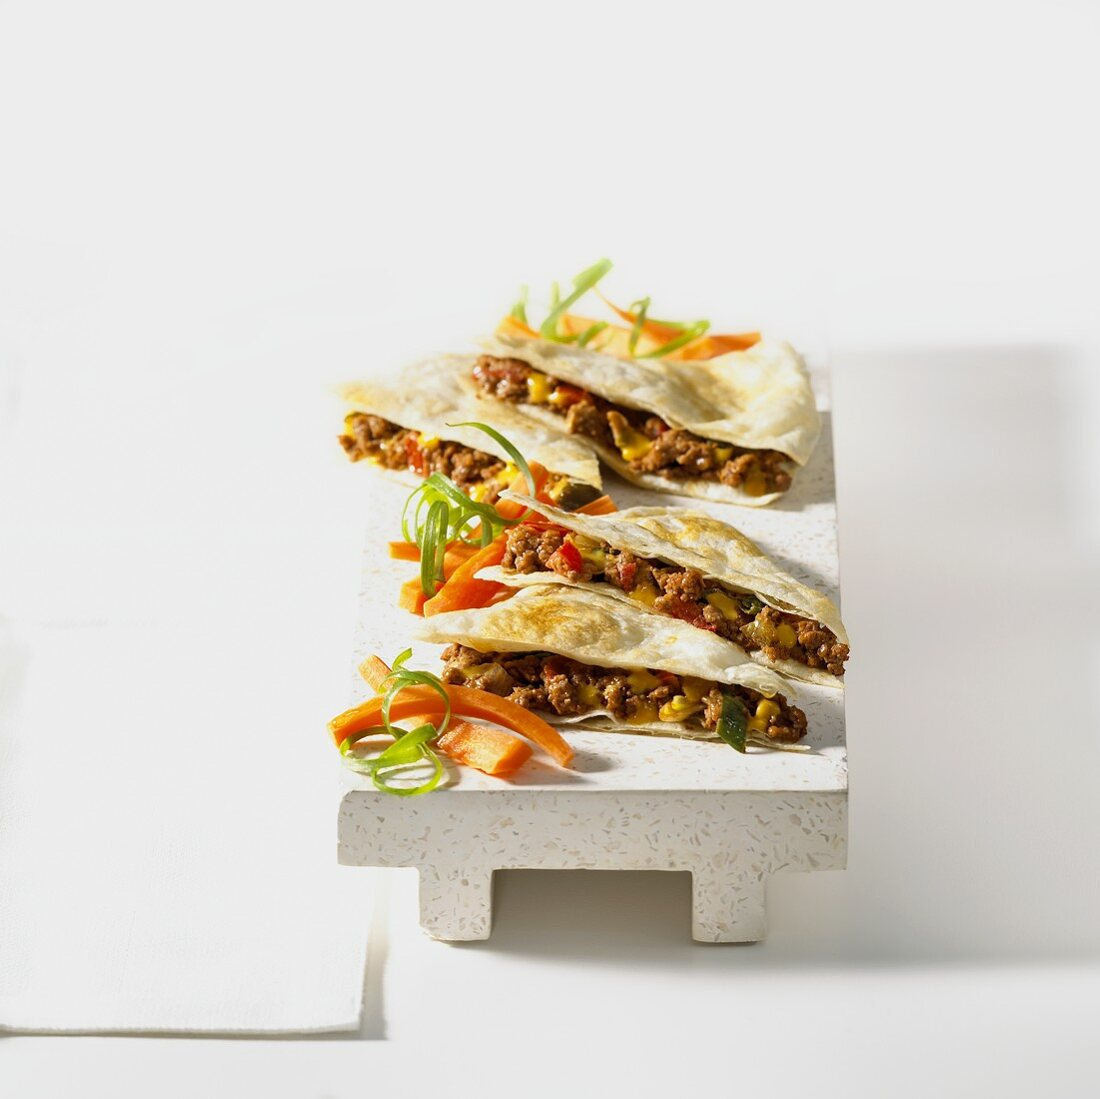 Quesadillas with mince and sweetcorn filling